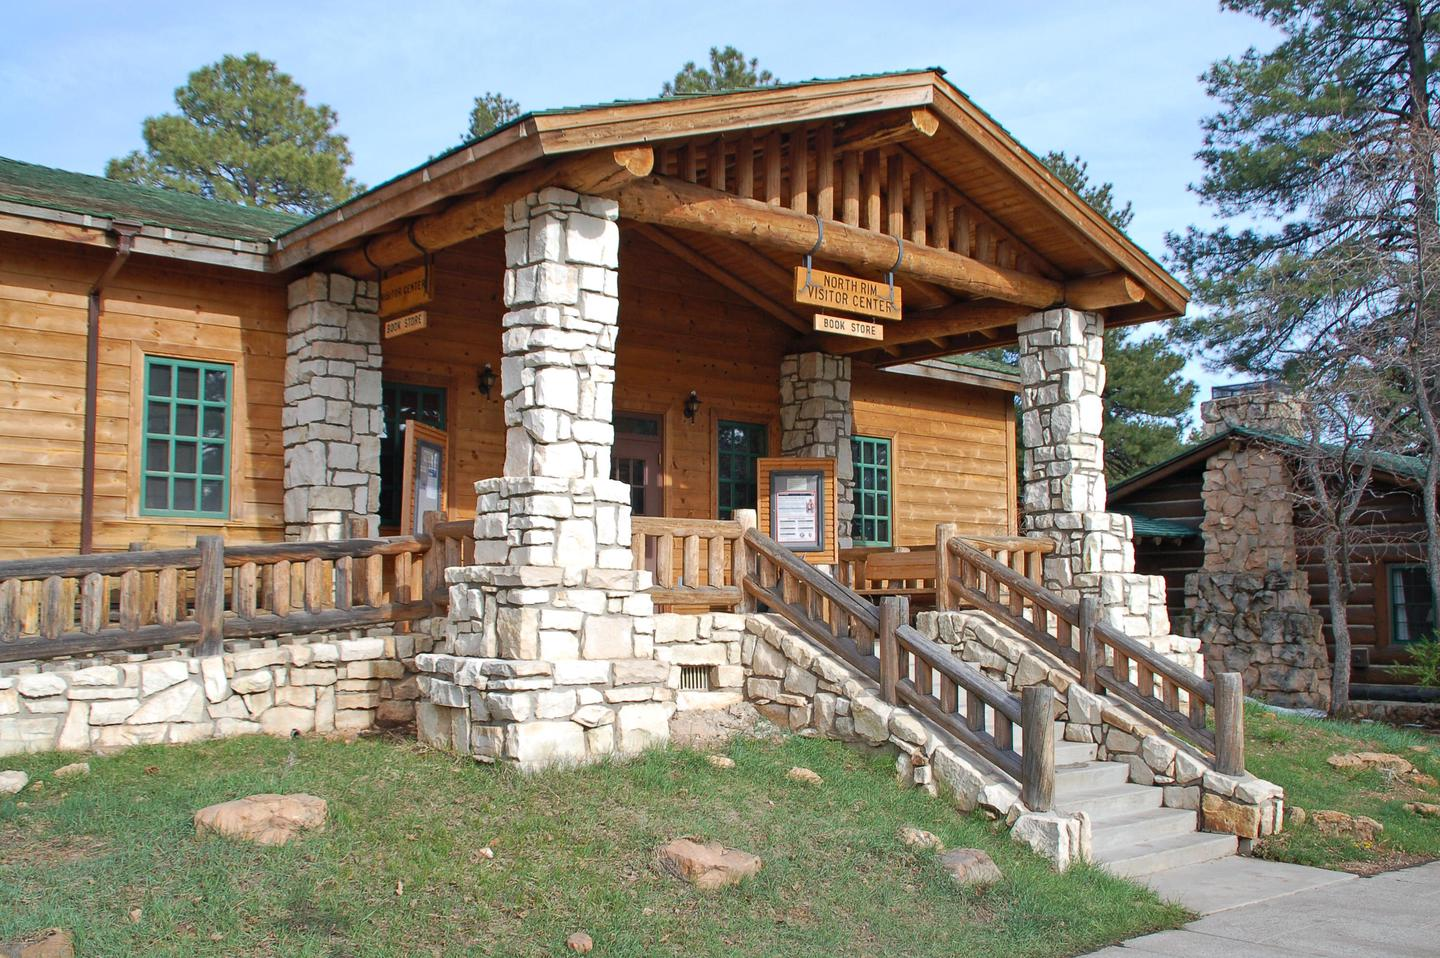 Preview photo of North Rim Visitor Center